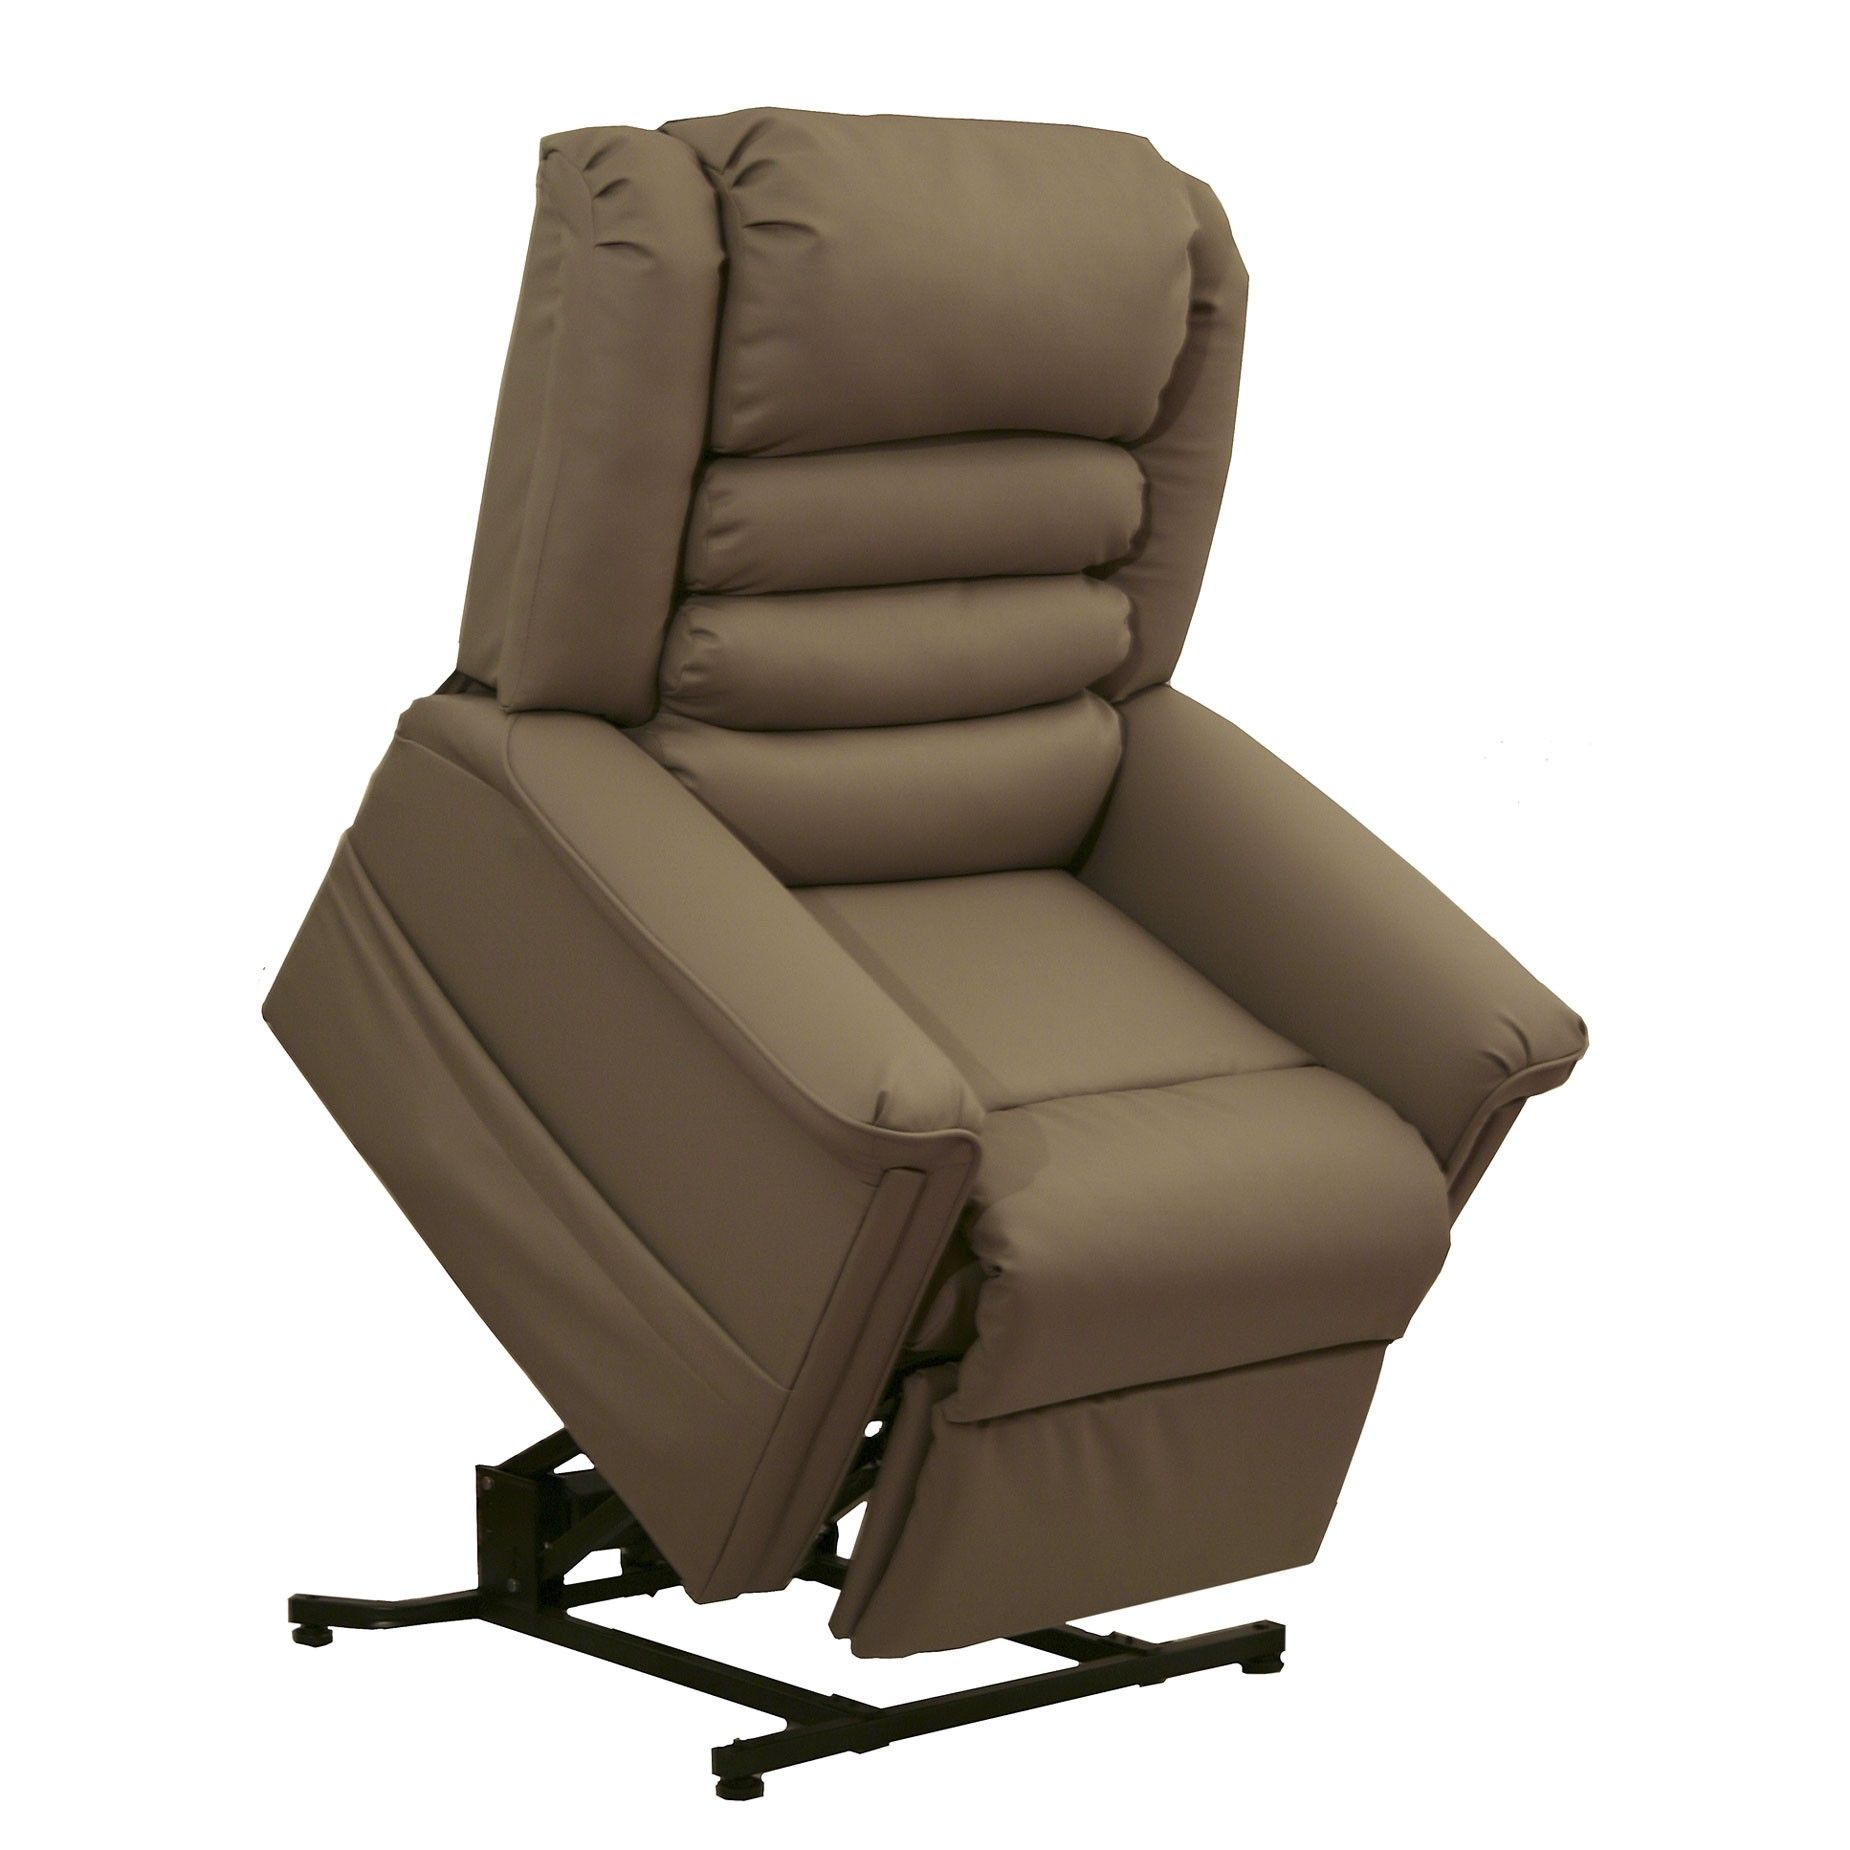 Catnapper Invincible Power Lift Chair Full Lay Out Recliner With Hospital Grade Vinyl 4832 Power Lift Chairs Recliners